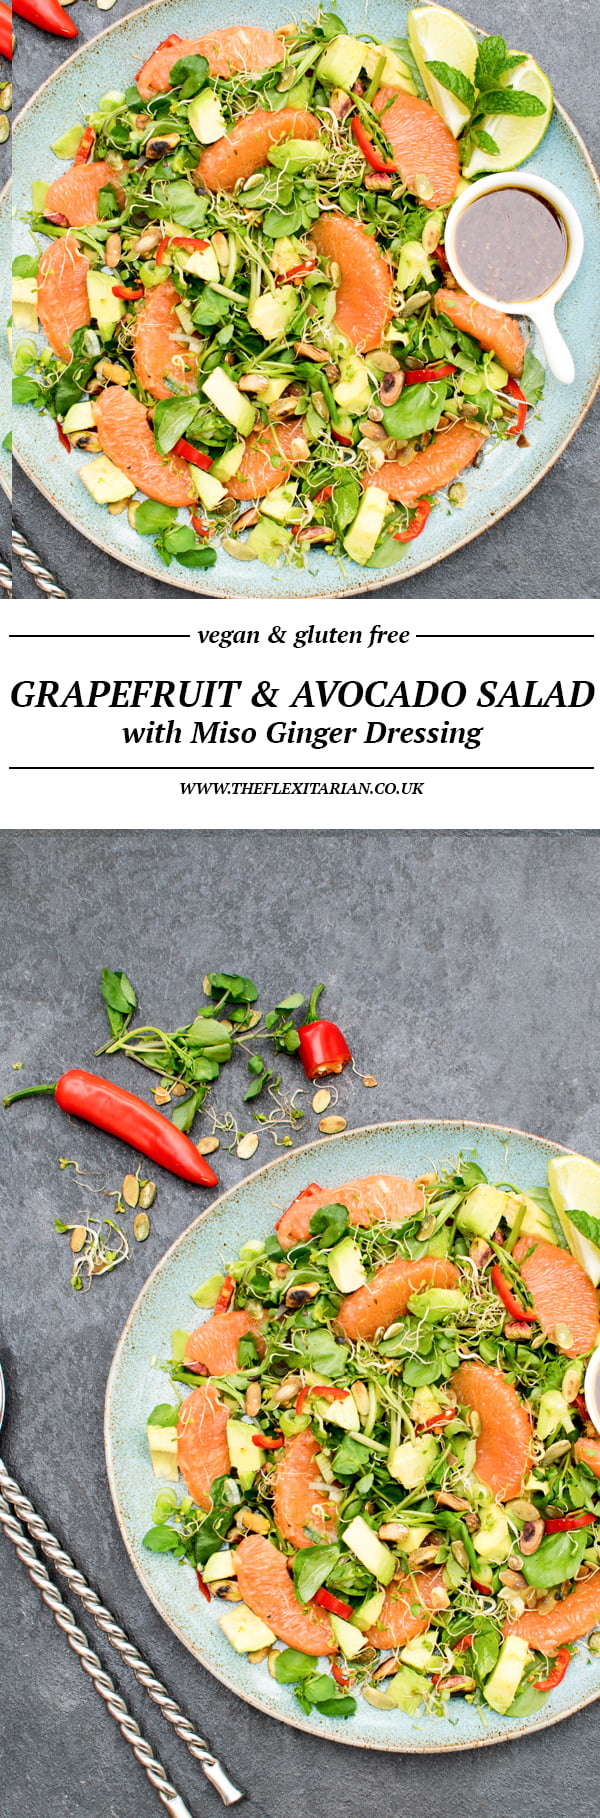 Grapefruit & Avocado Salad with Miso Ginger Dressing [vegan] [gluten free] by The Flexitarian